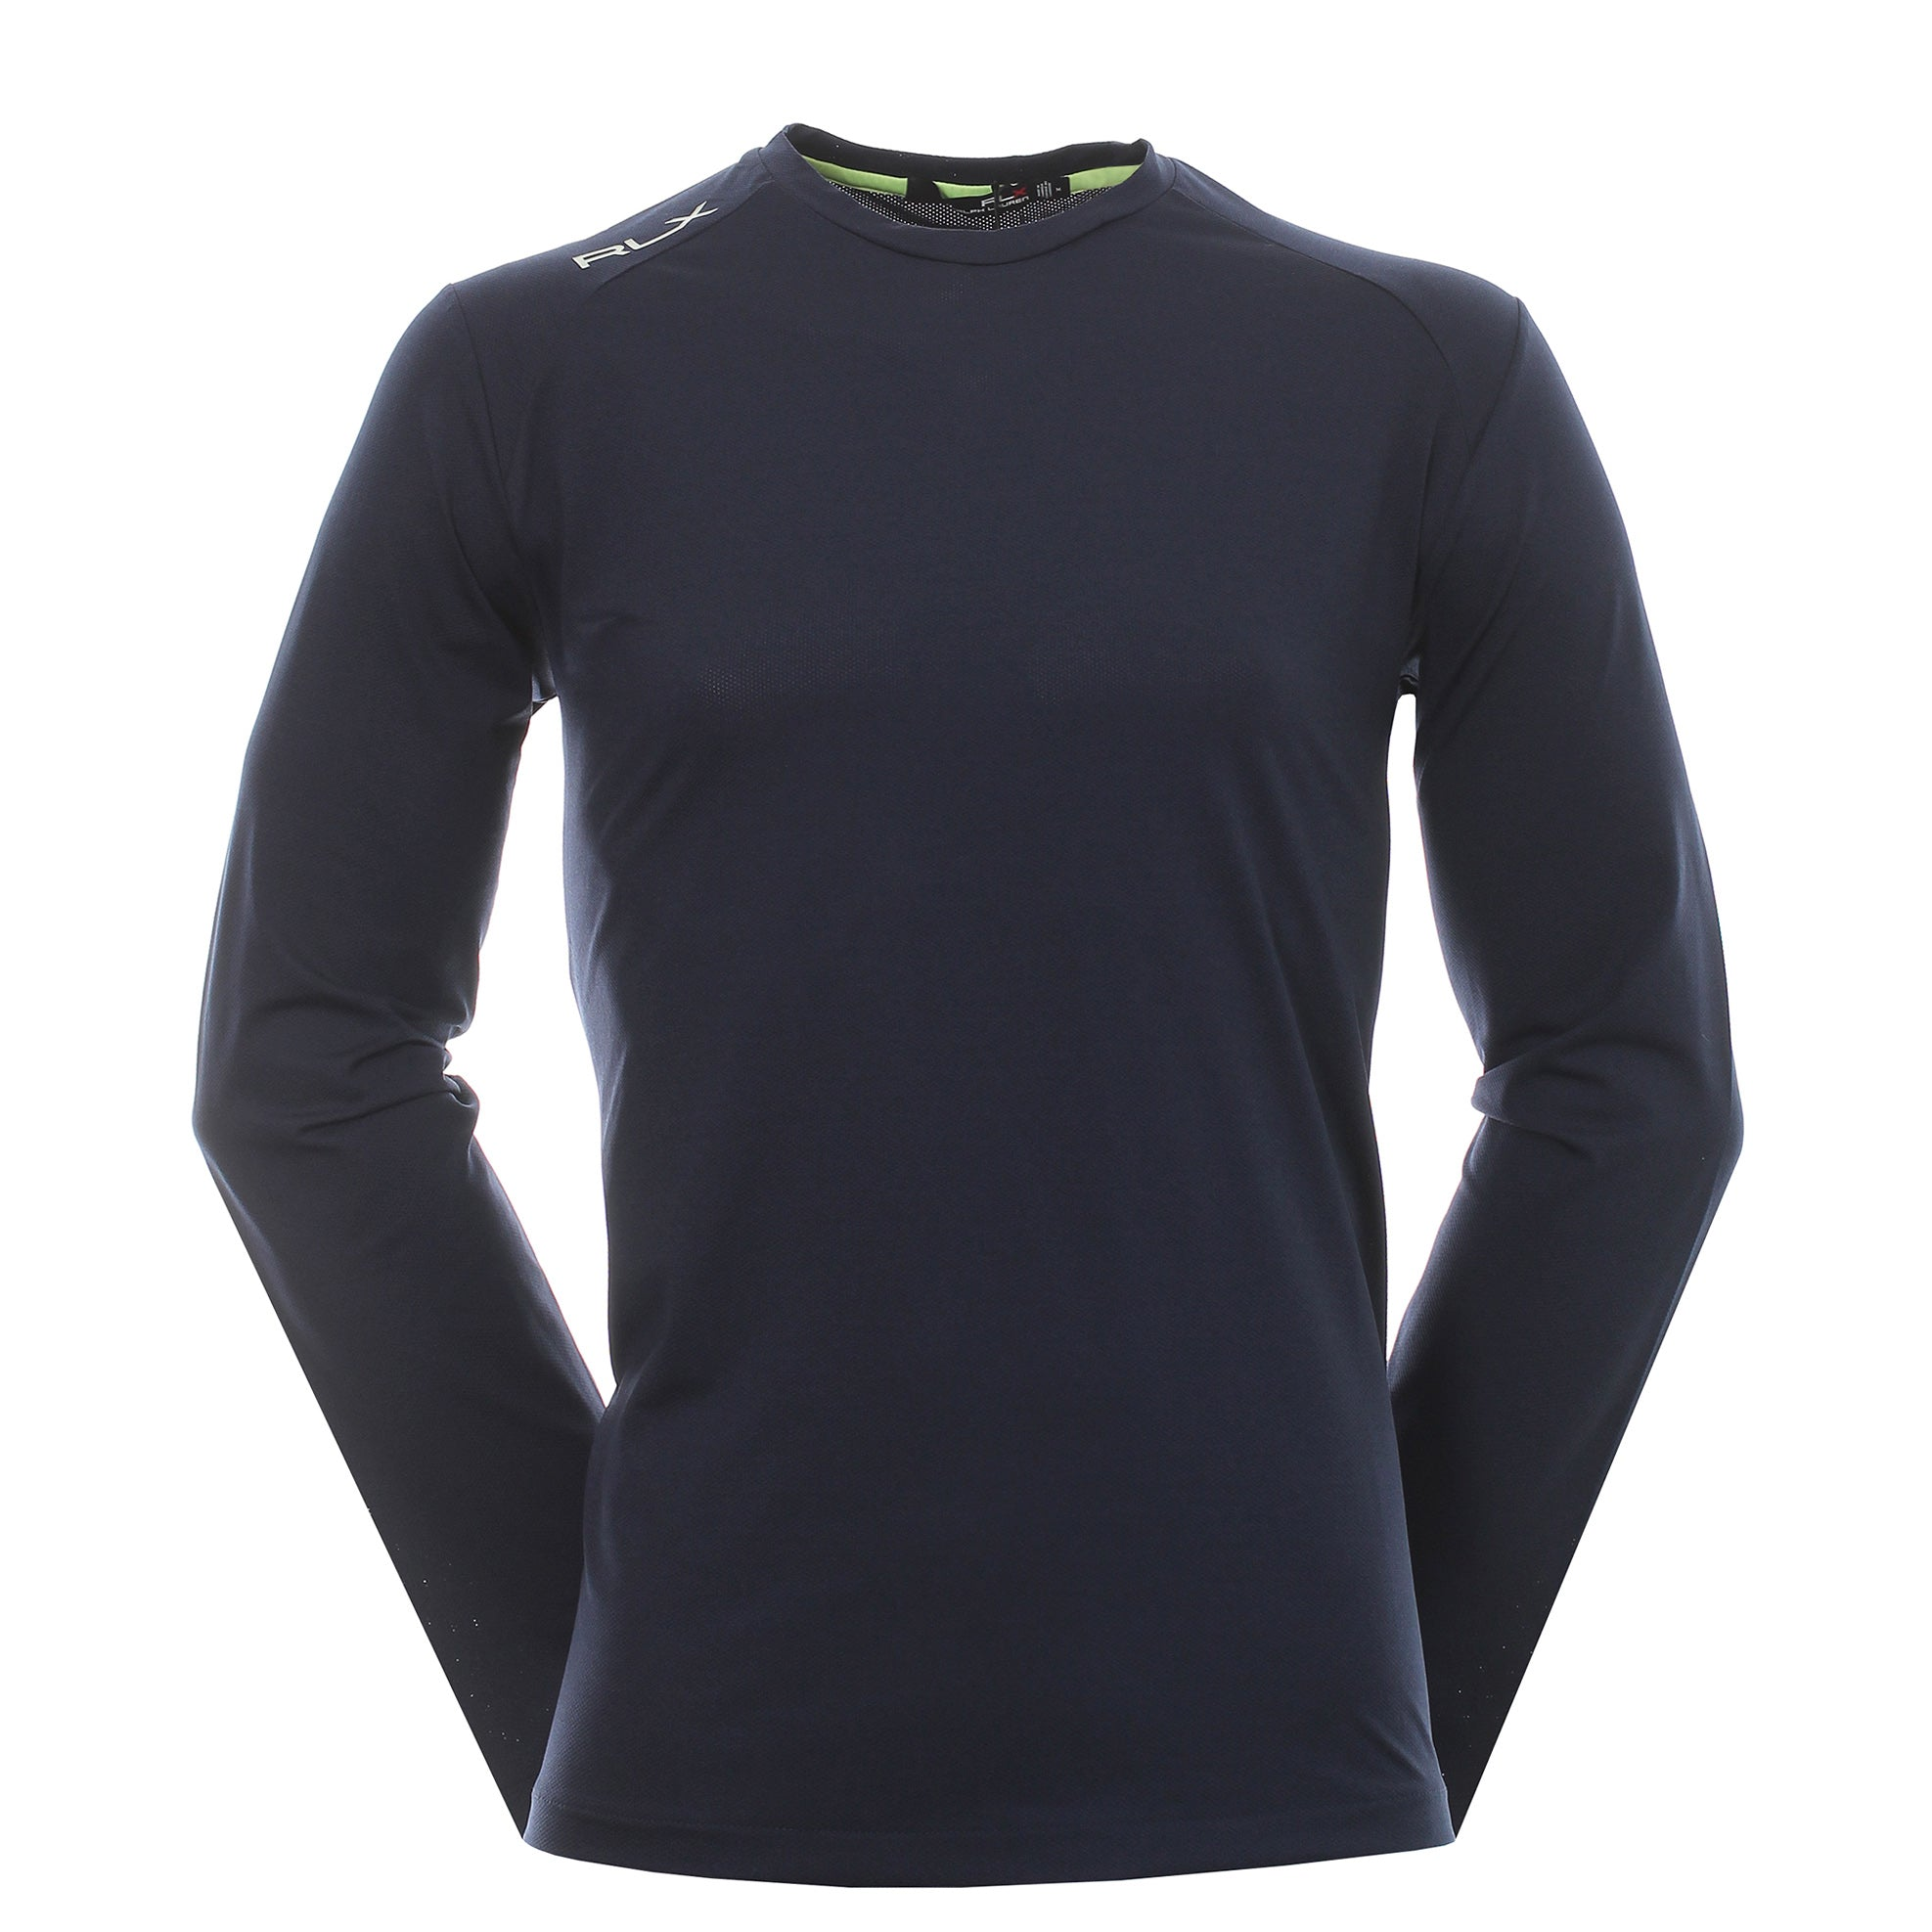 RLX Ralph Lauren Crew Neck Long Sleeve